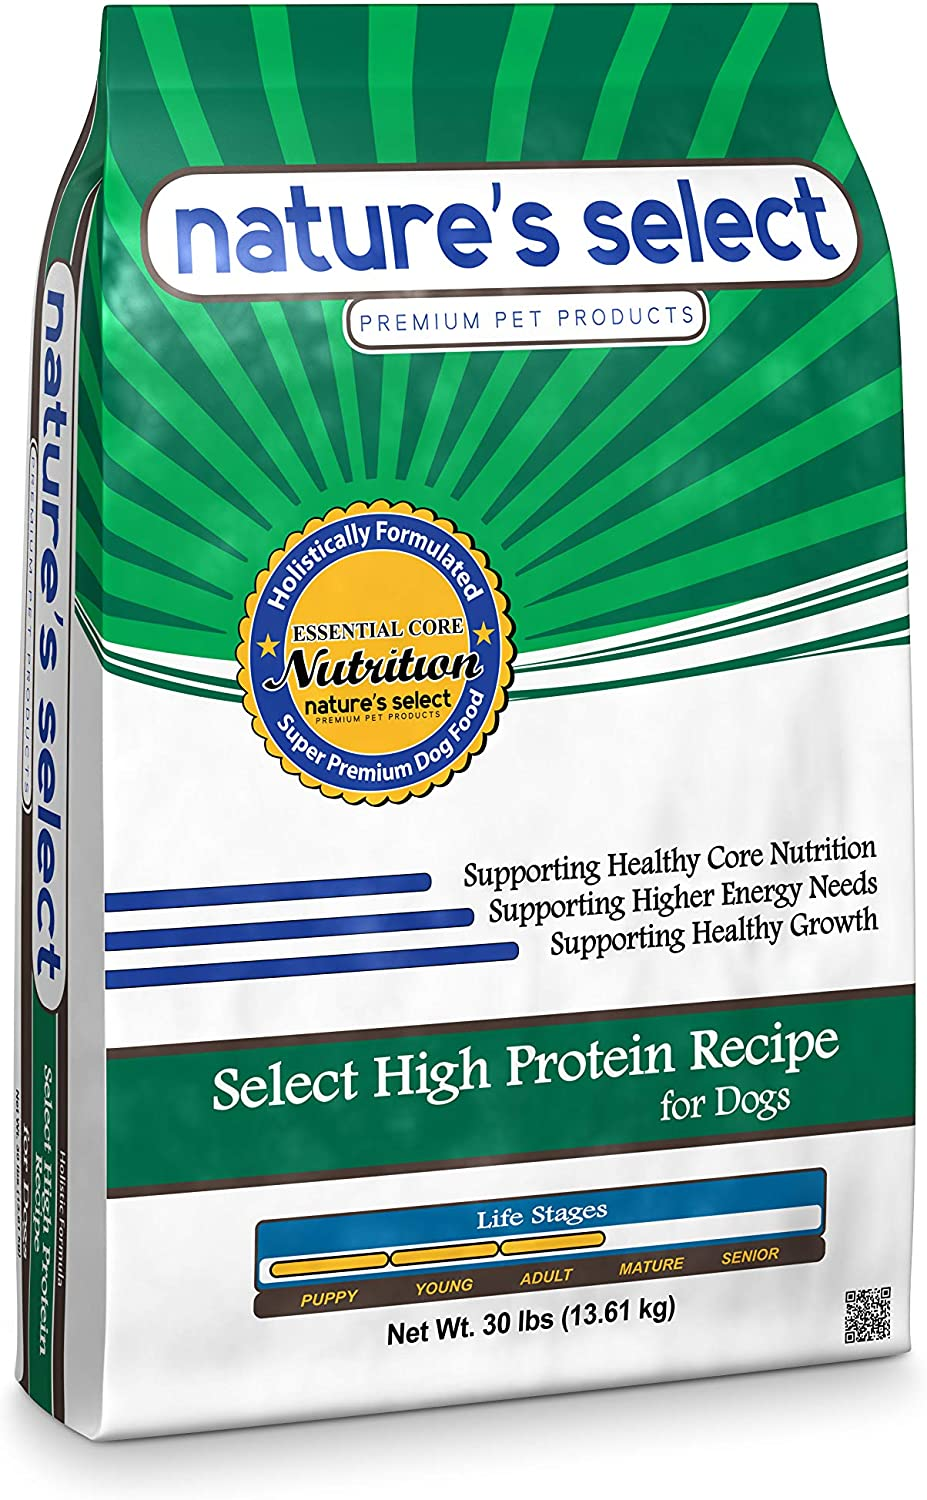 Nature's Select High Protein Recipe - Chicken & Rice Puppy Dry Dog Food